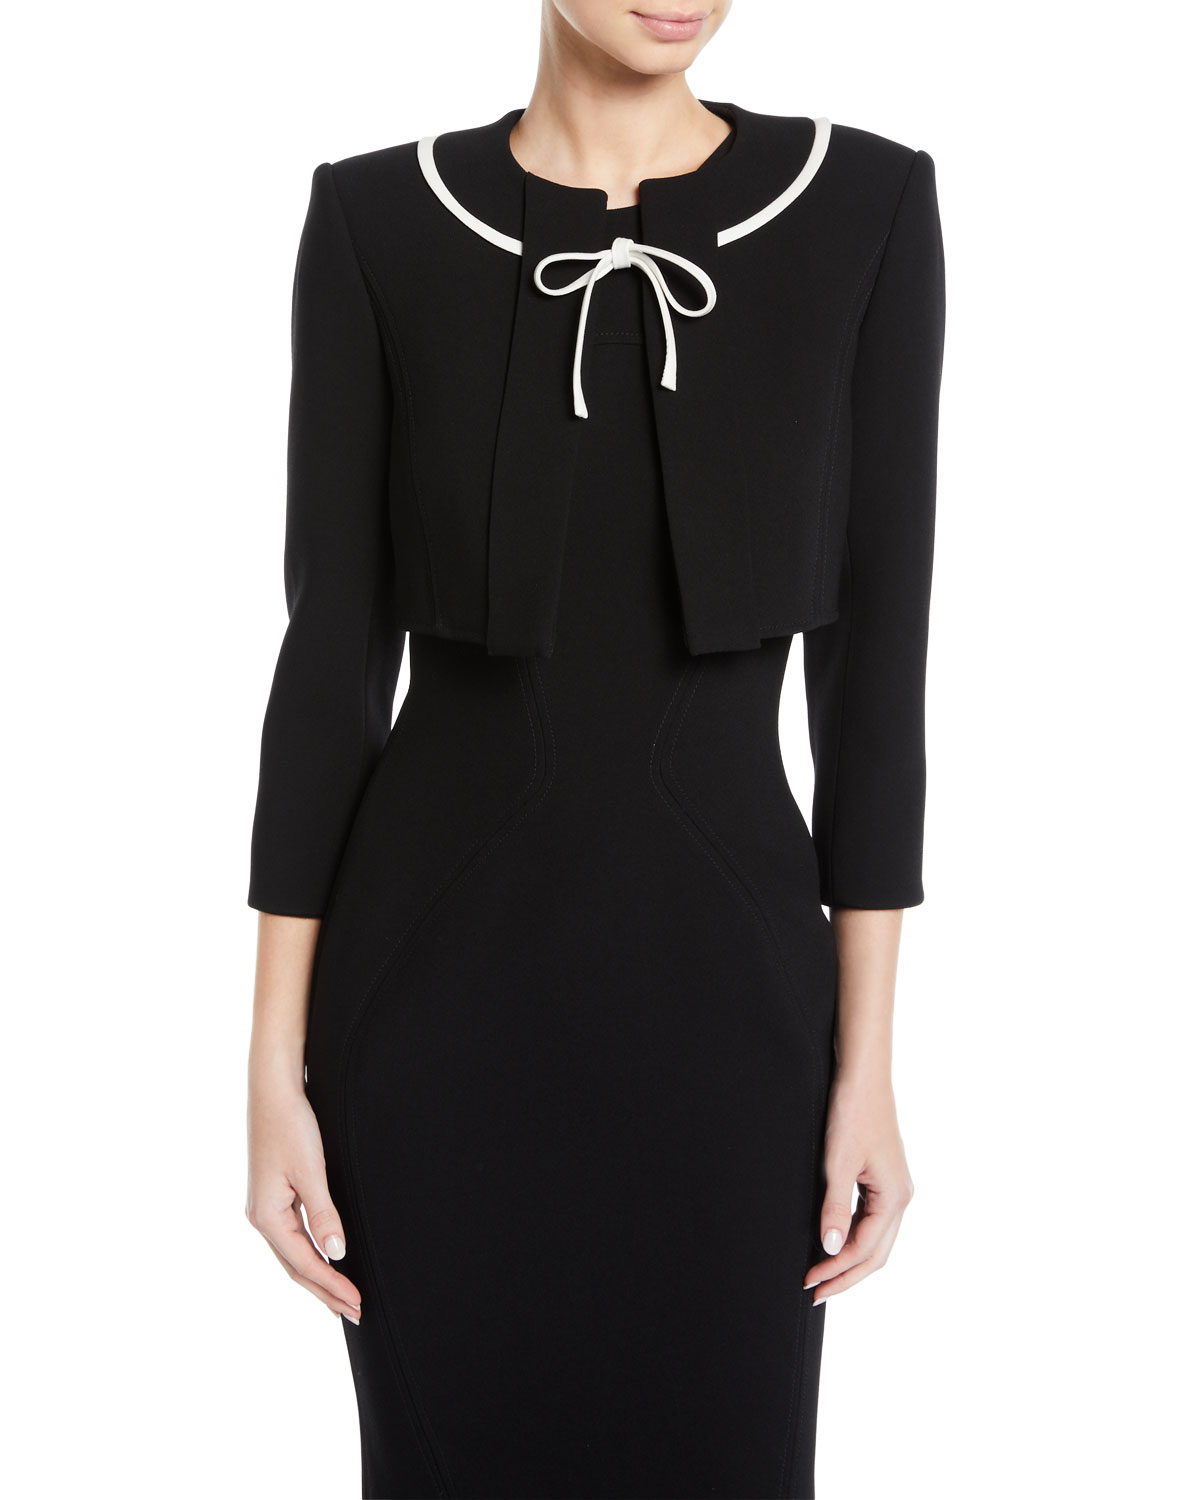 Zac Posen CROPPED JACKET WITH CONTRAST RIBBON TIES